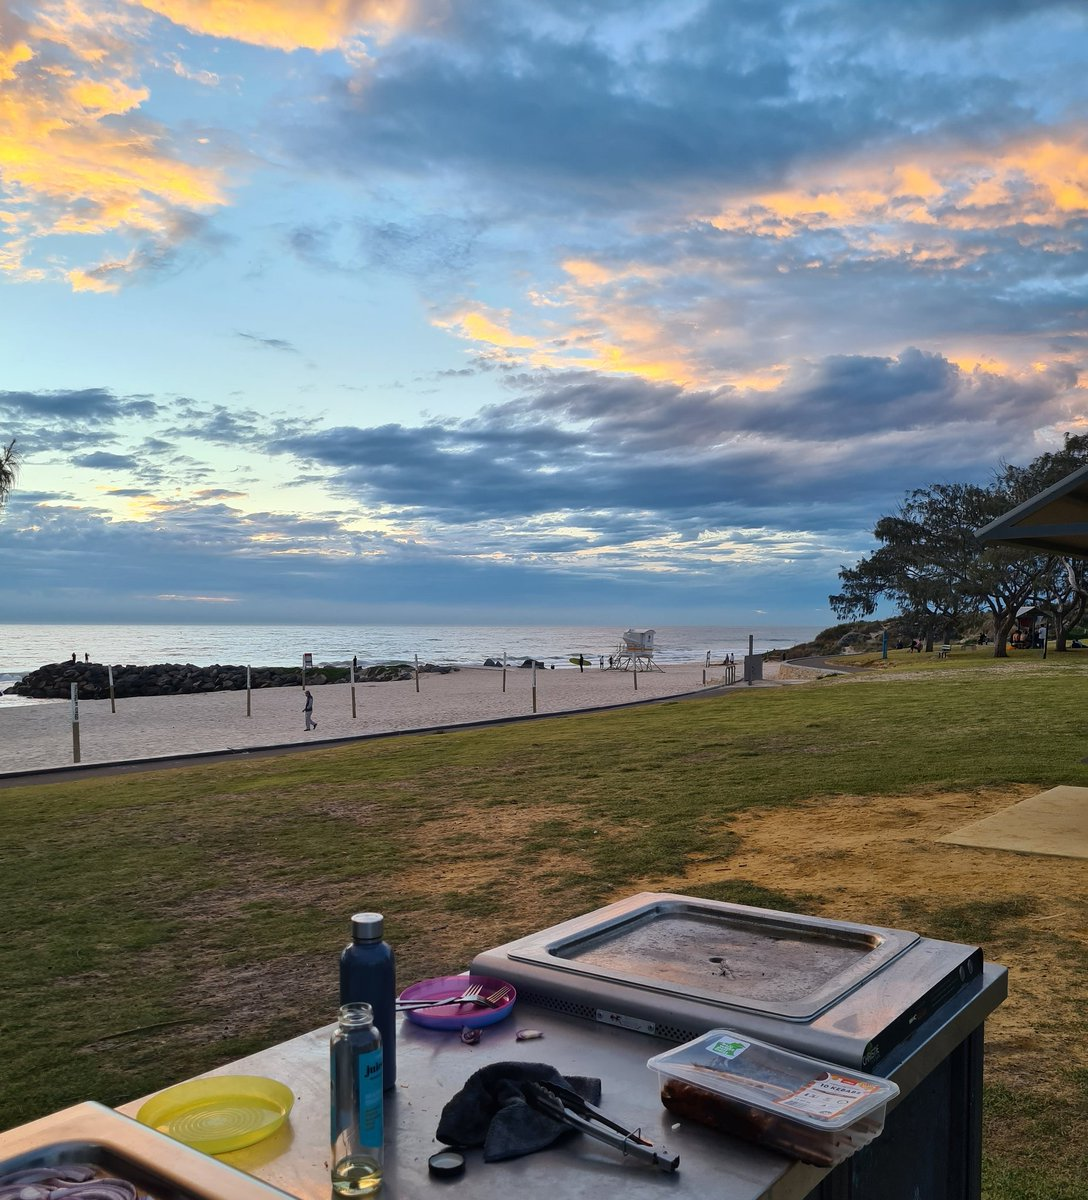 Gorgeous view for a BBQ dinner @perthisok pic.twitter.com/Cb654tUT9w